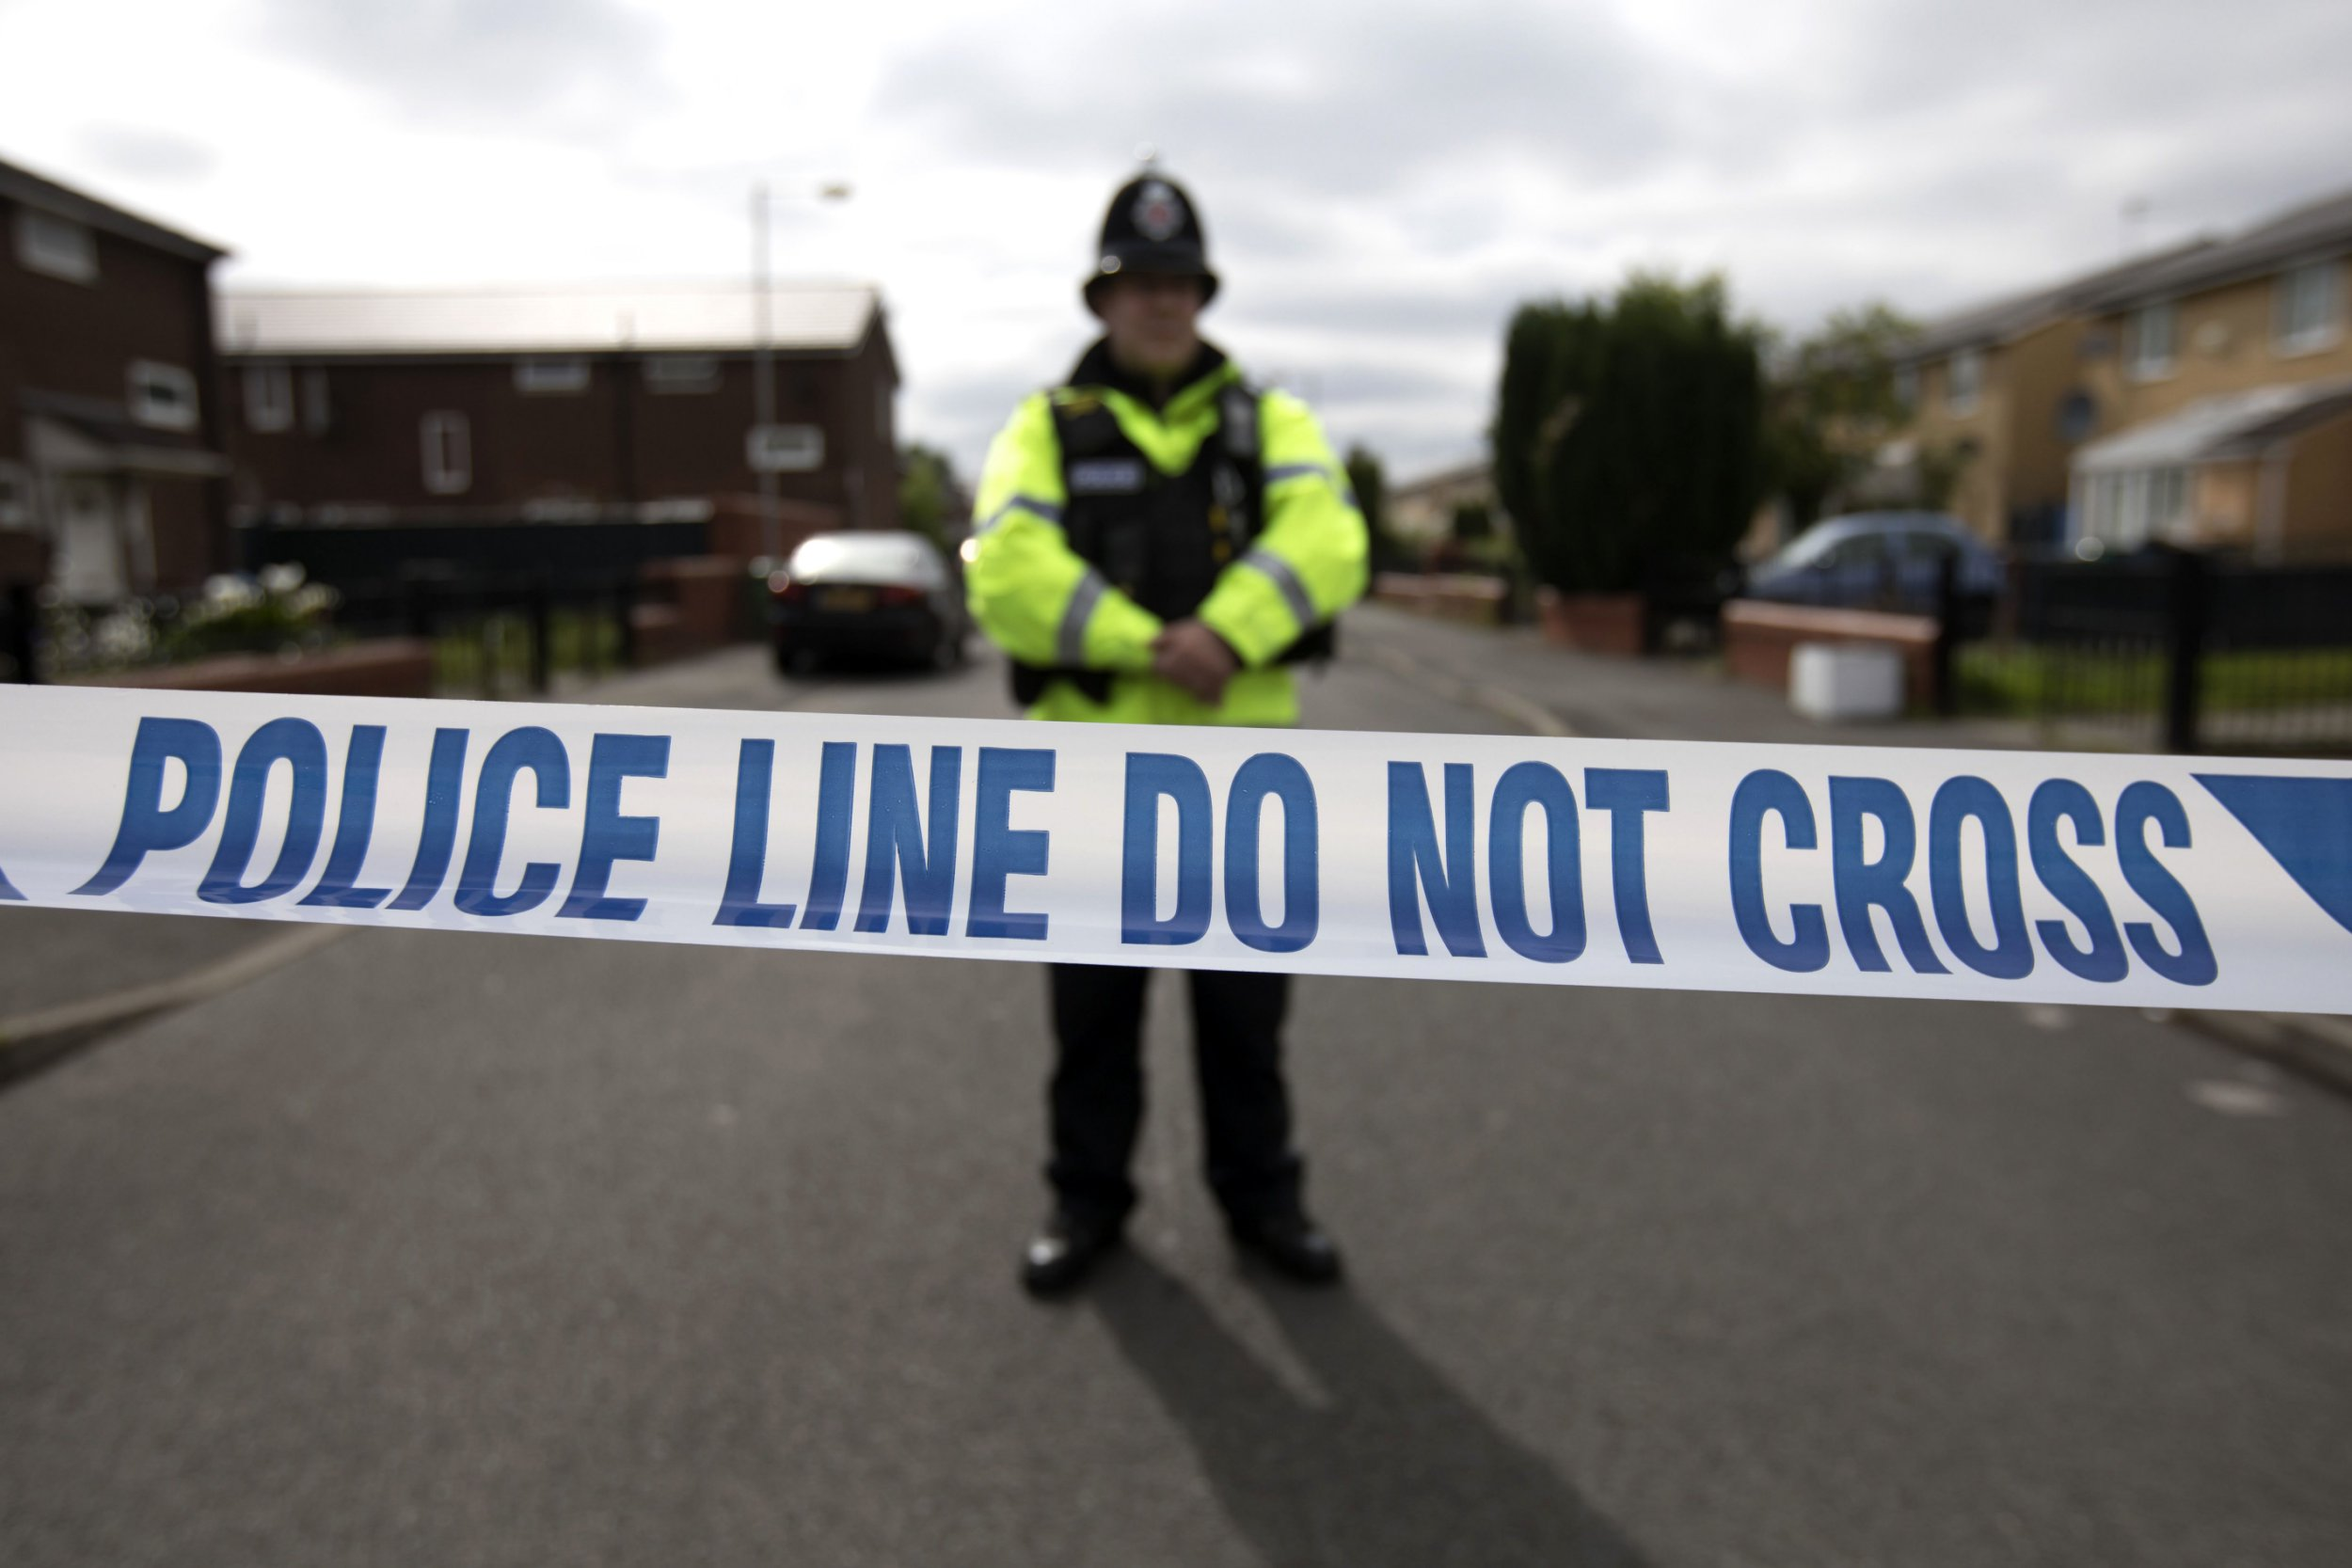 Girl, 15, seriously injured after being shot in 'random attack'